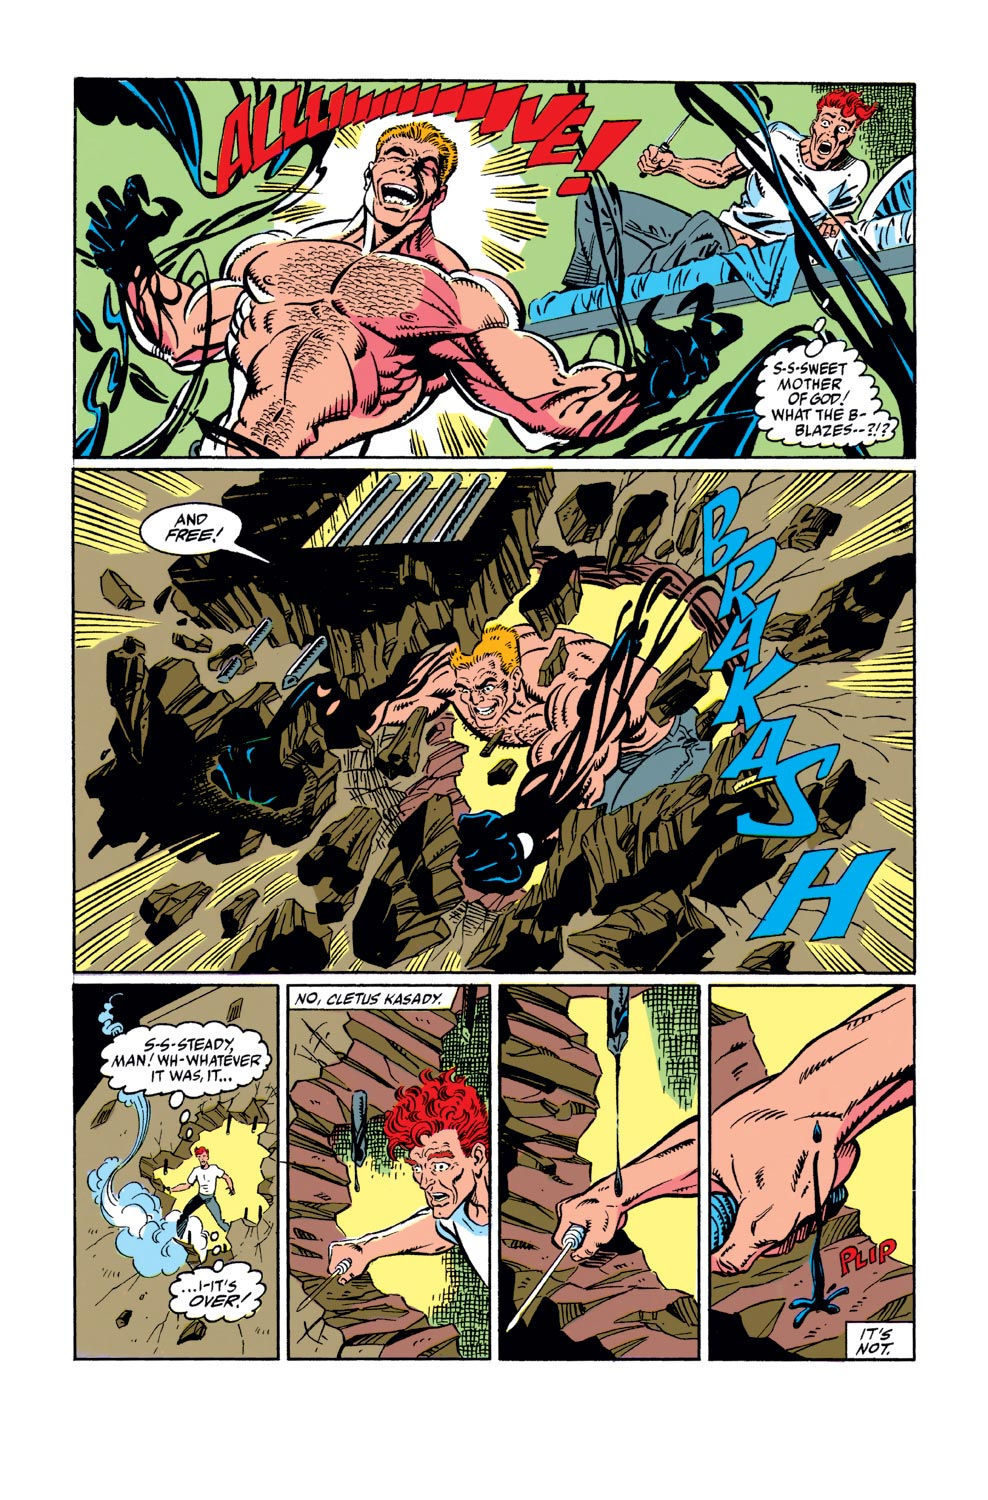 ASM 345 - Brock escapes 2